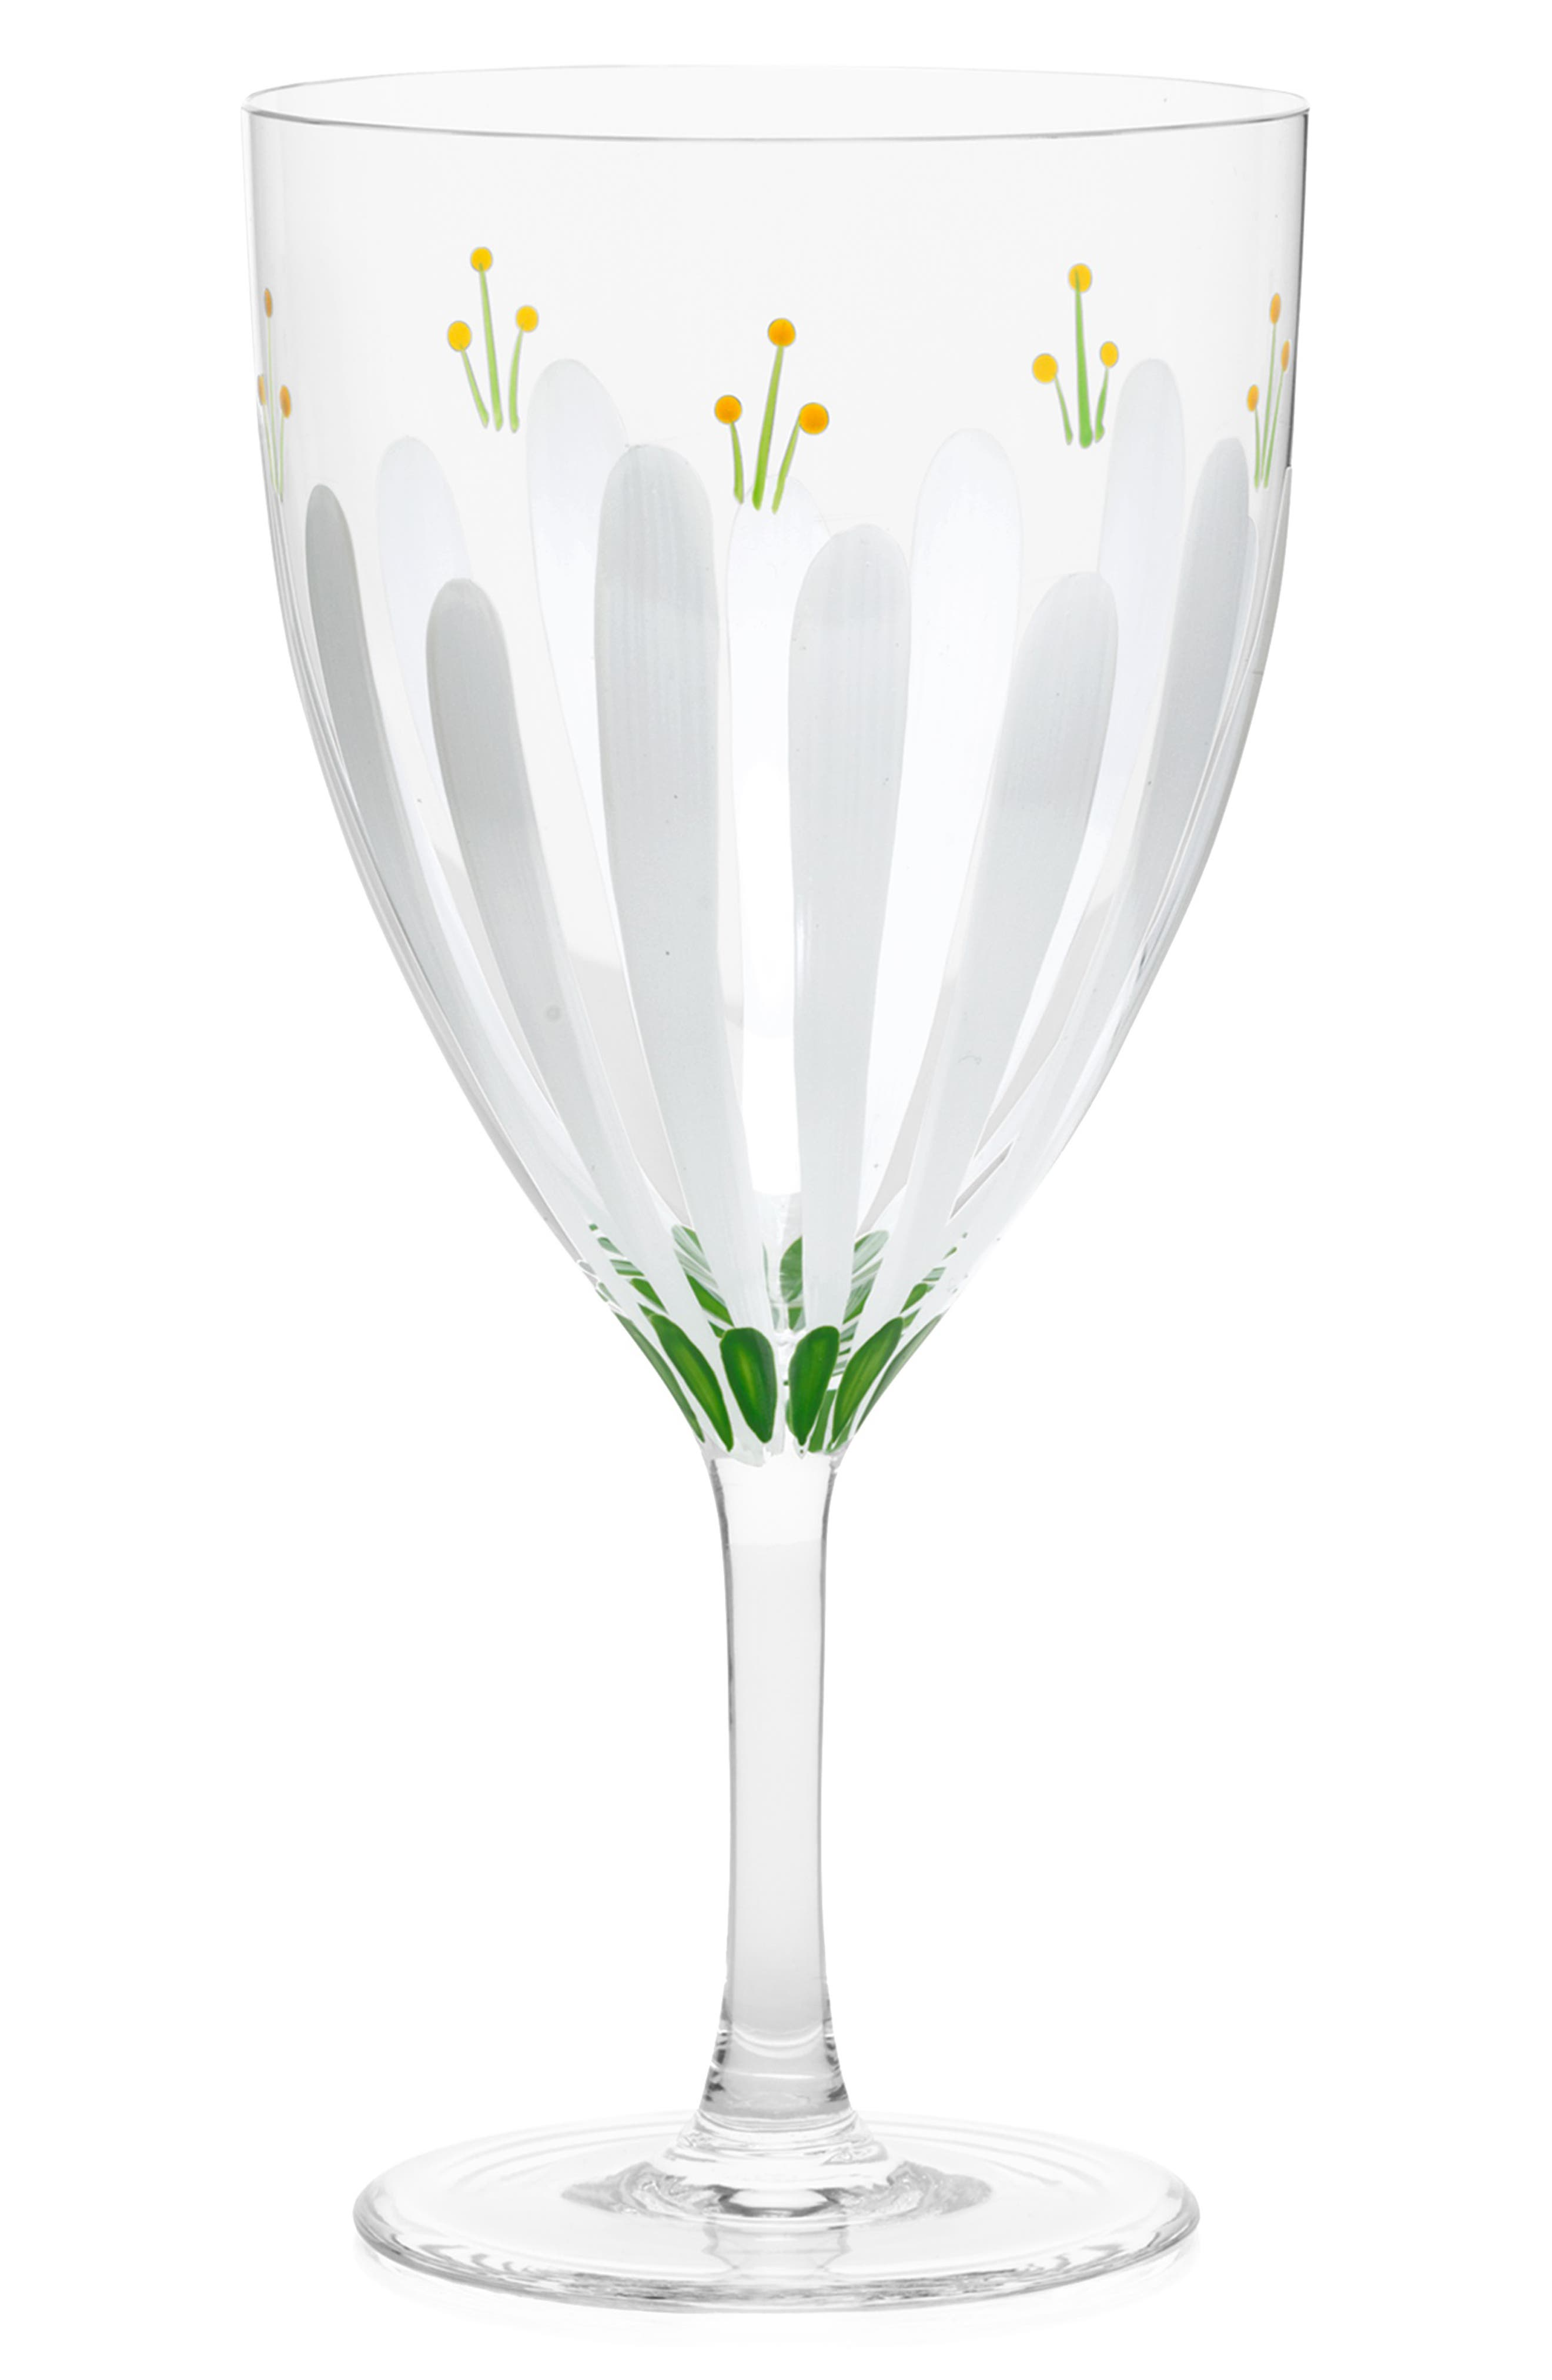 TORY BURCH, Spring Meadow Set of 2 Wine Glasses, Main thumbnail 1, color, CLEAR/ MULTI